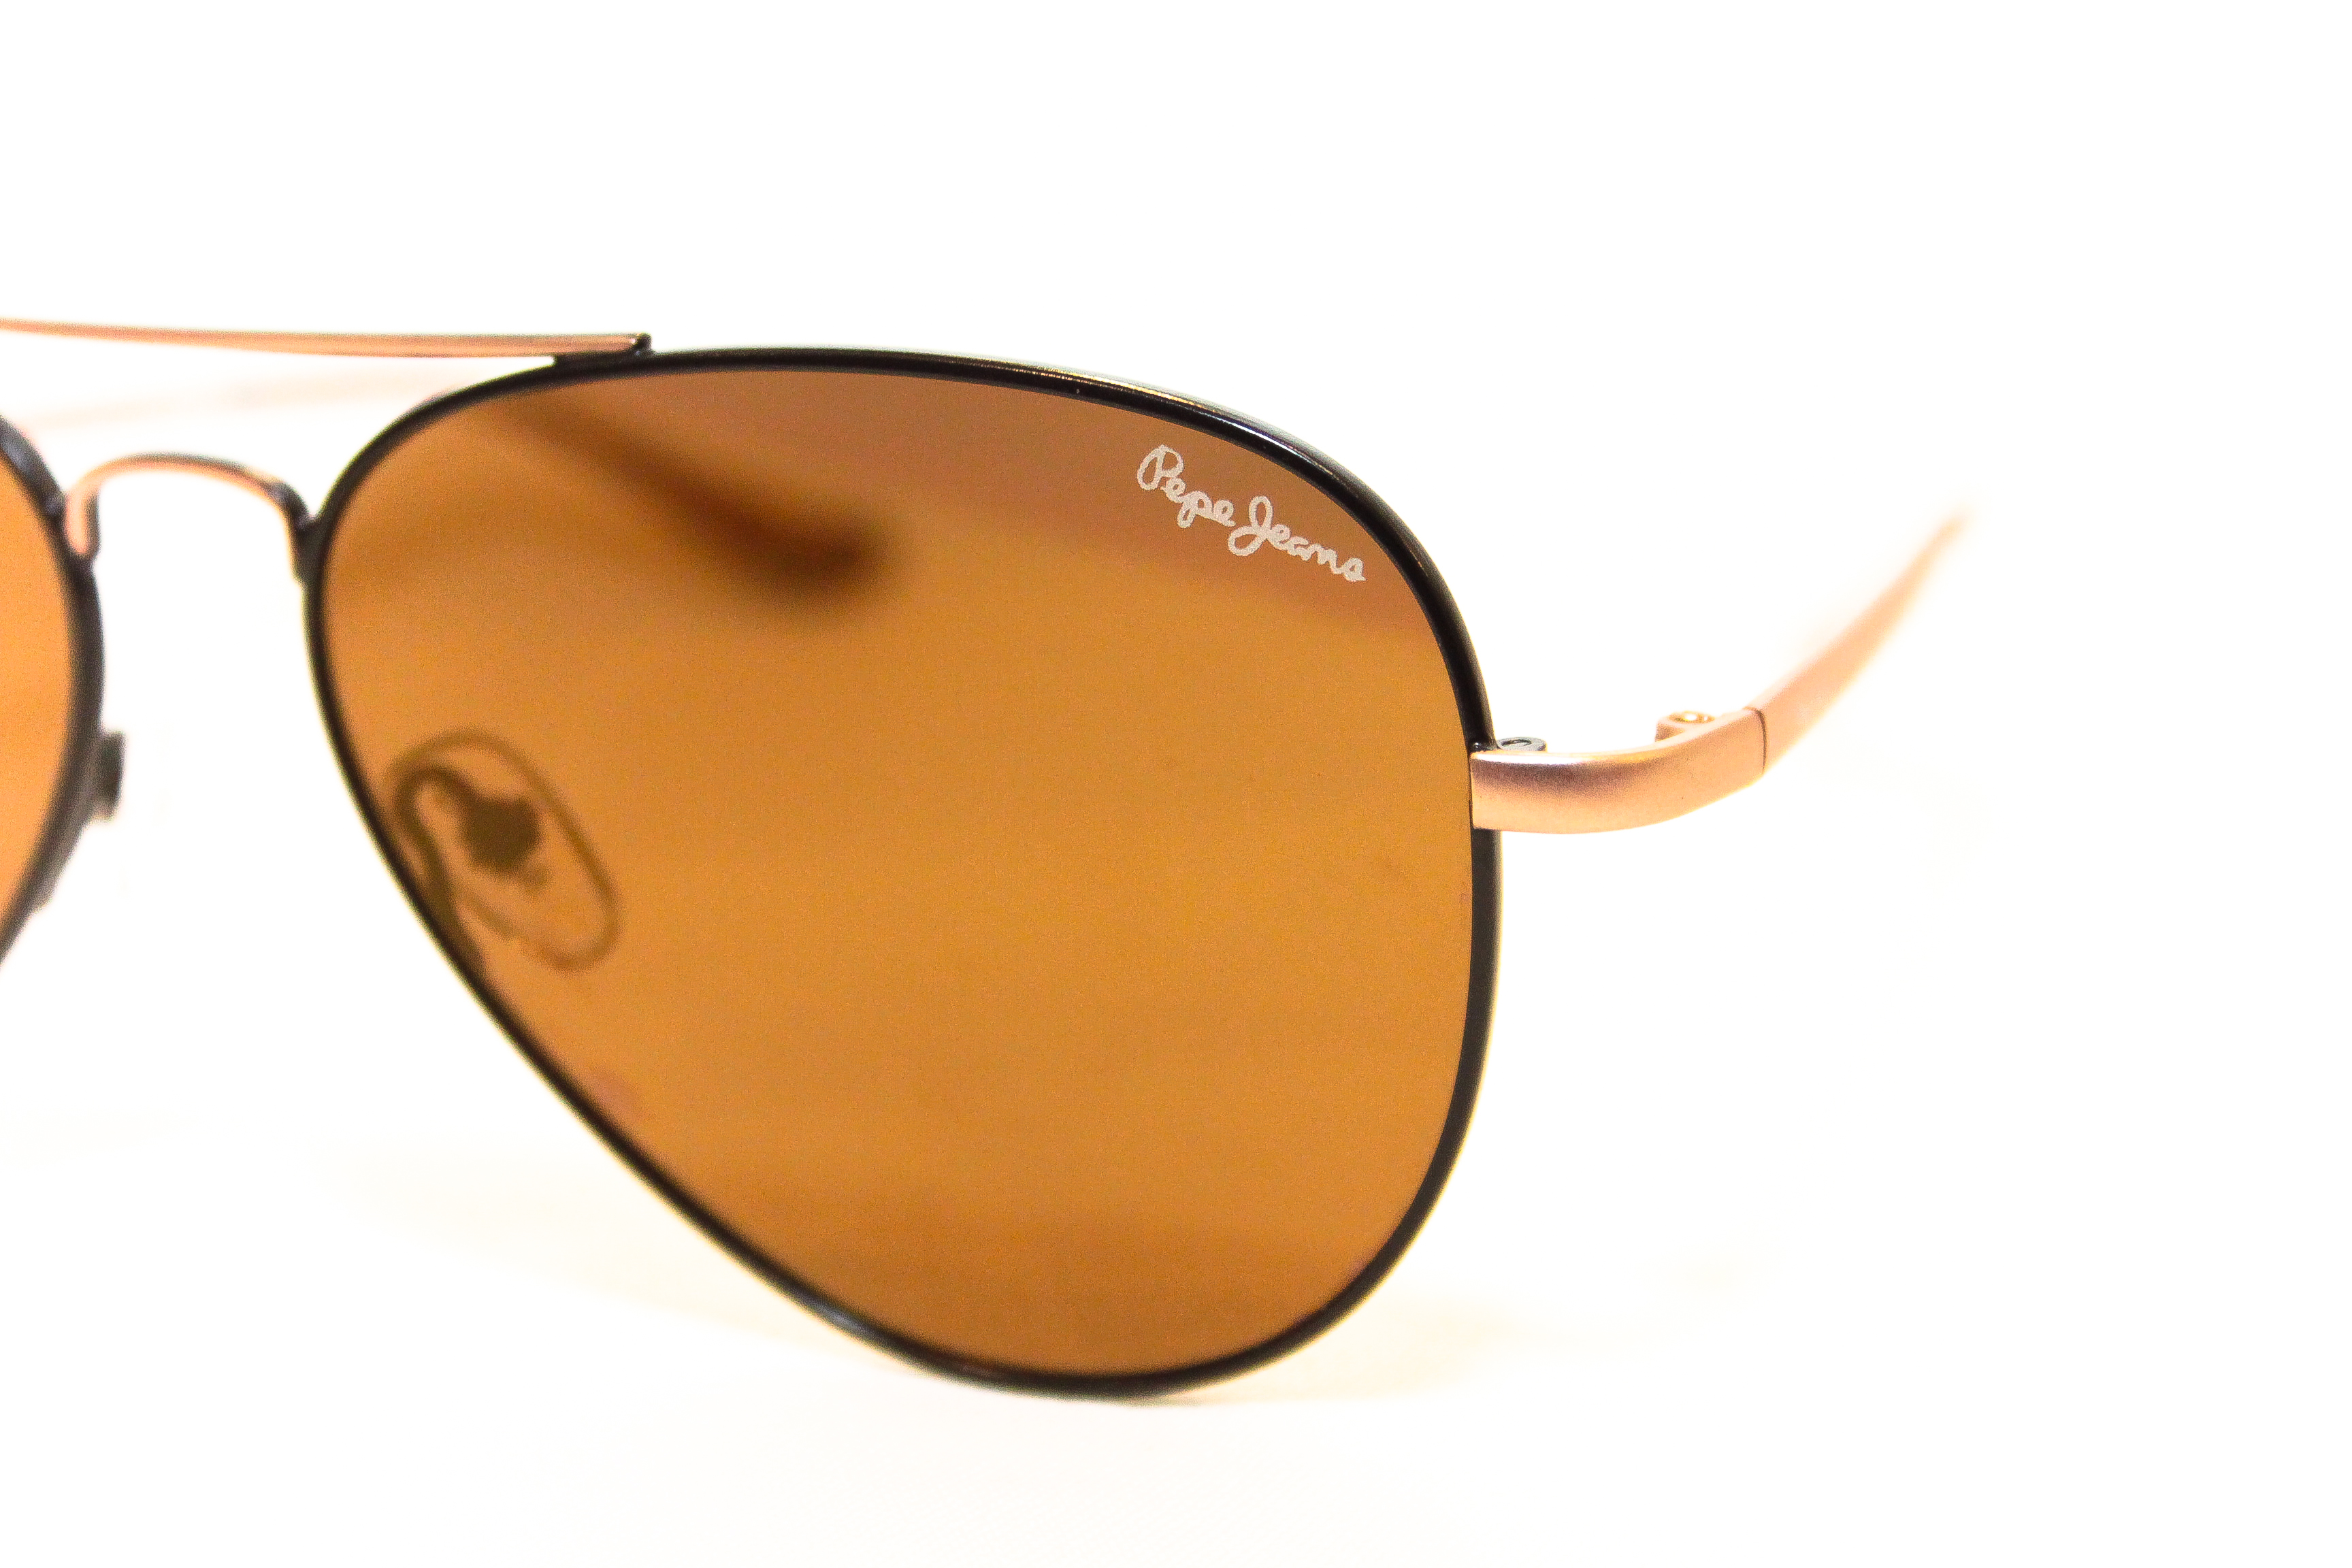 PEPE JEANS 5125 c.1